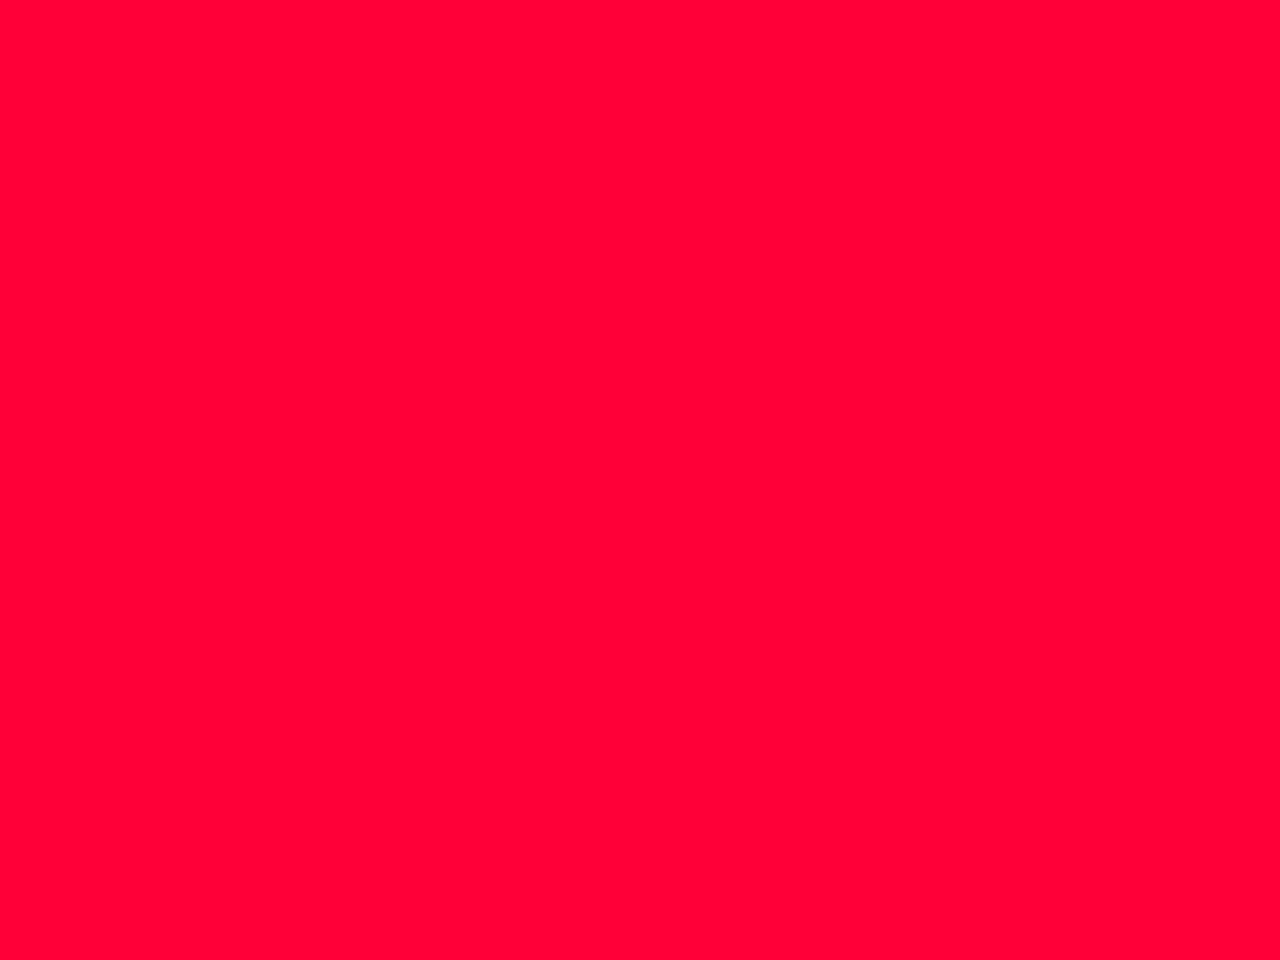 1280x960 Carmine Red Solid Color Background